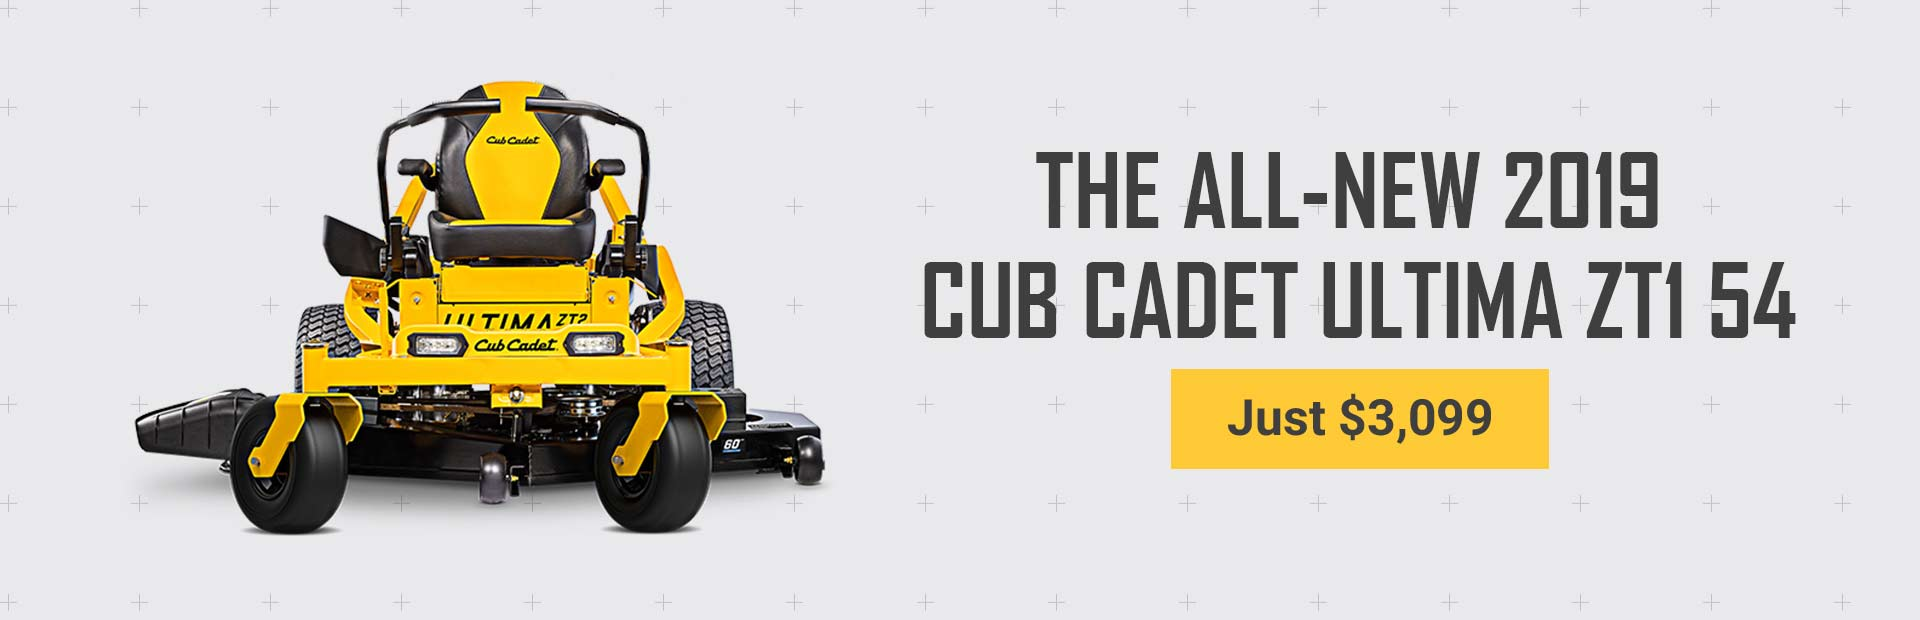 Get the all-new 2019 Cub Cadet Ultima ZT1 54 for just $3,099!